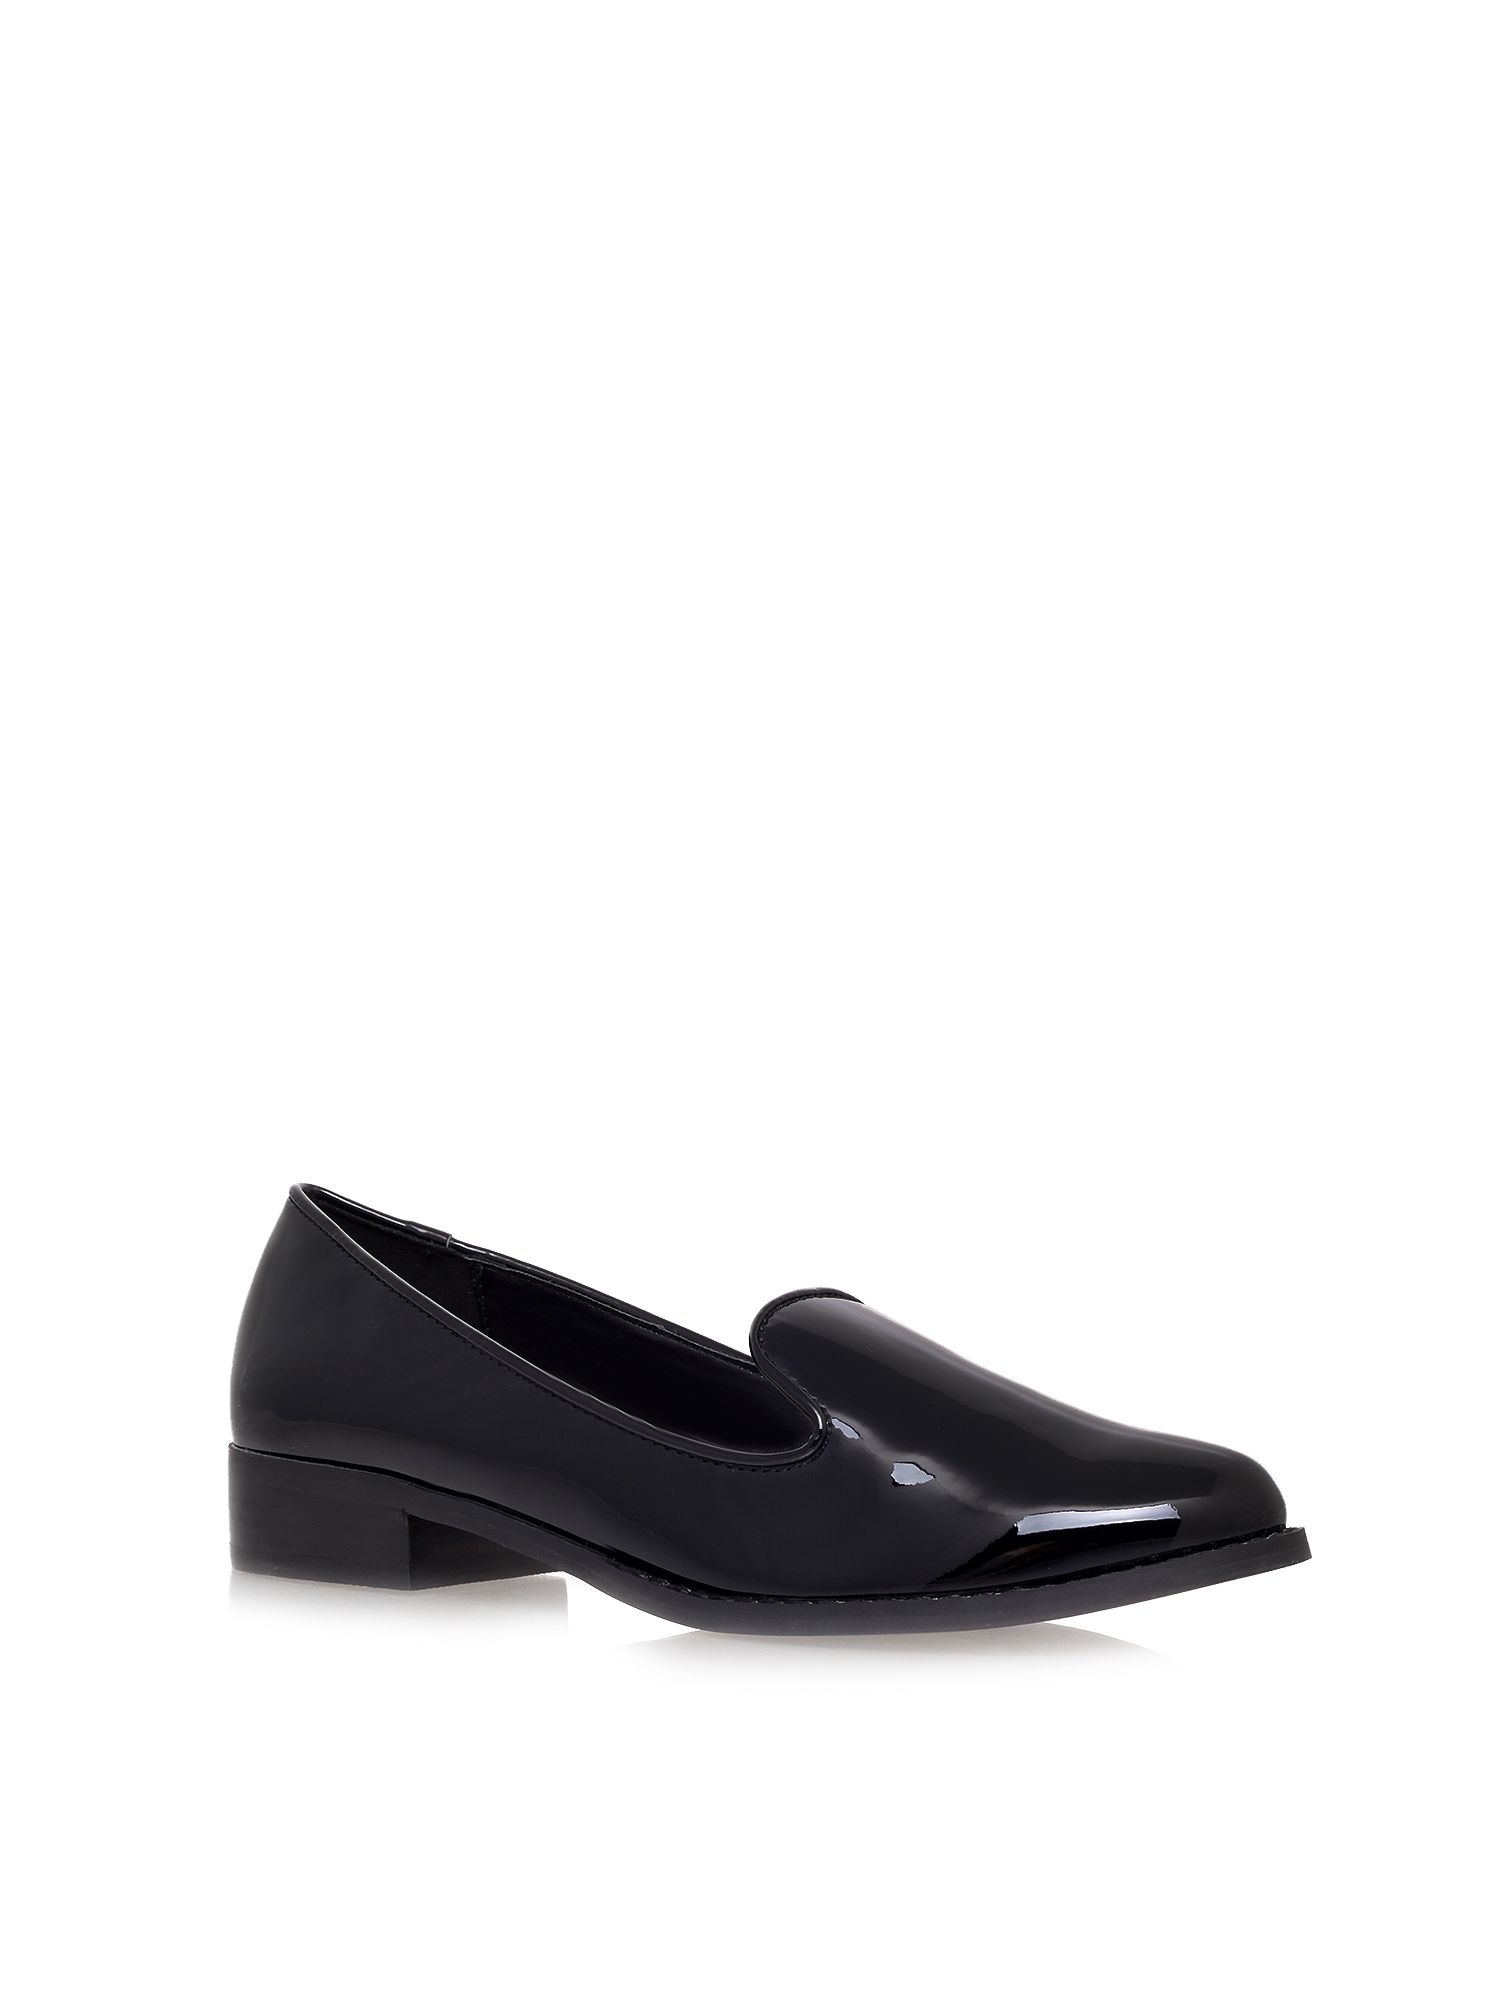 Neptune low heeled slip ons